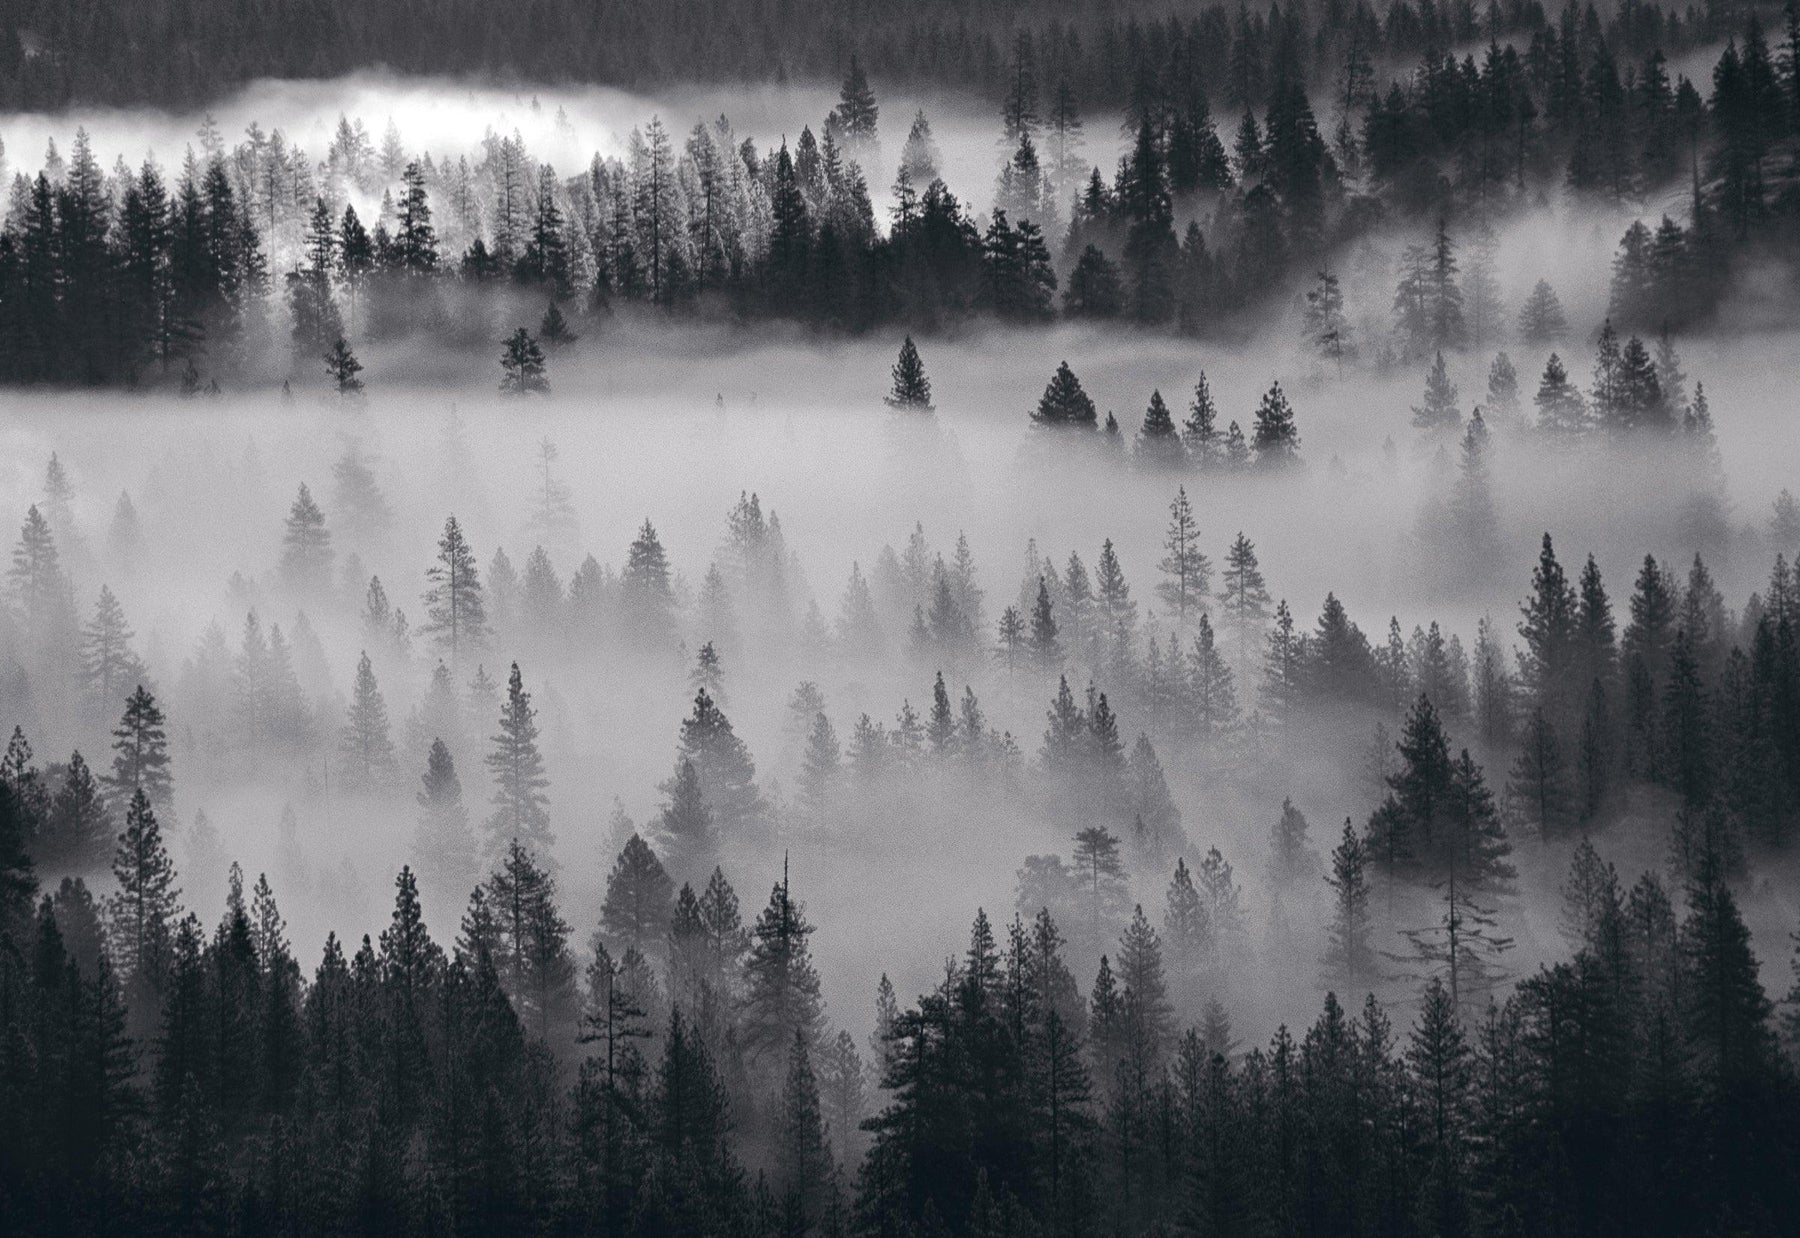 Black and white pine tree forest of Yosemite National Park California filled with mist